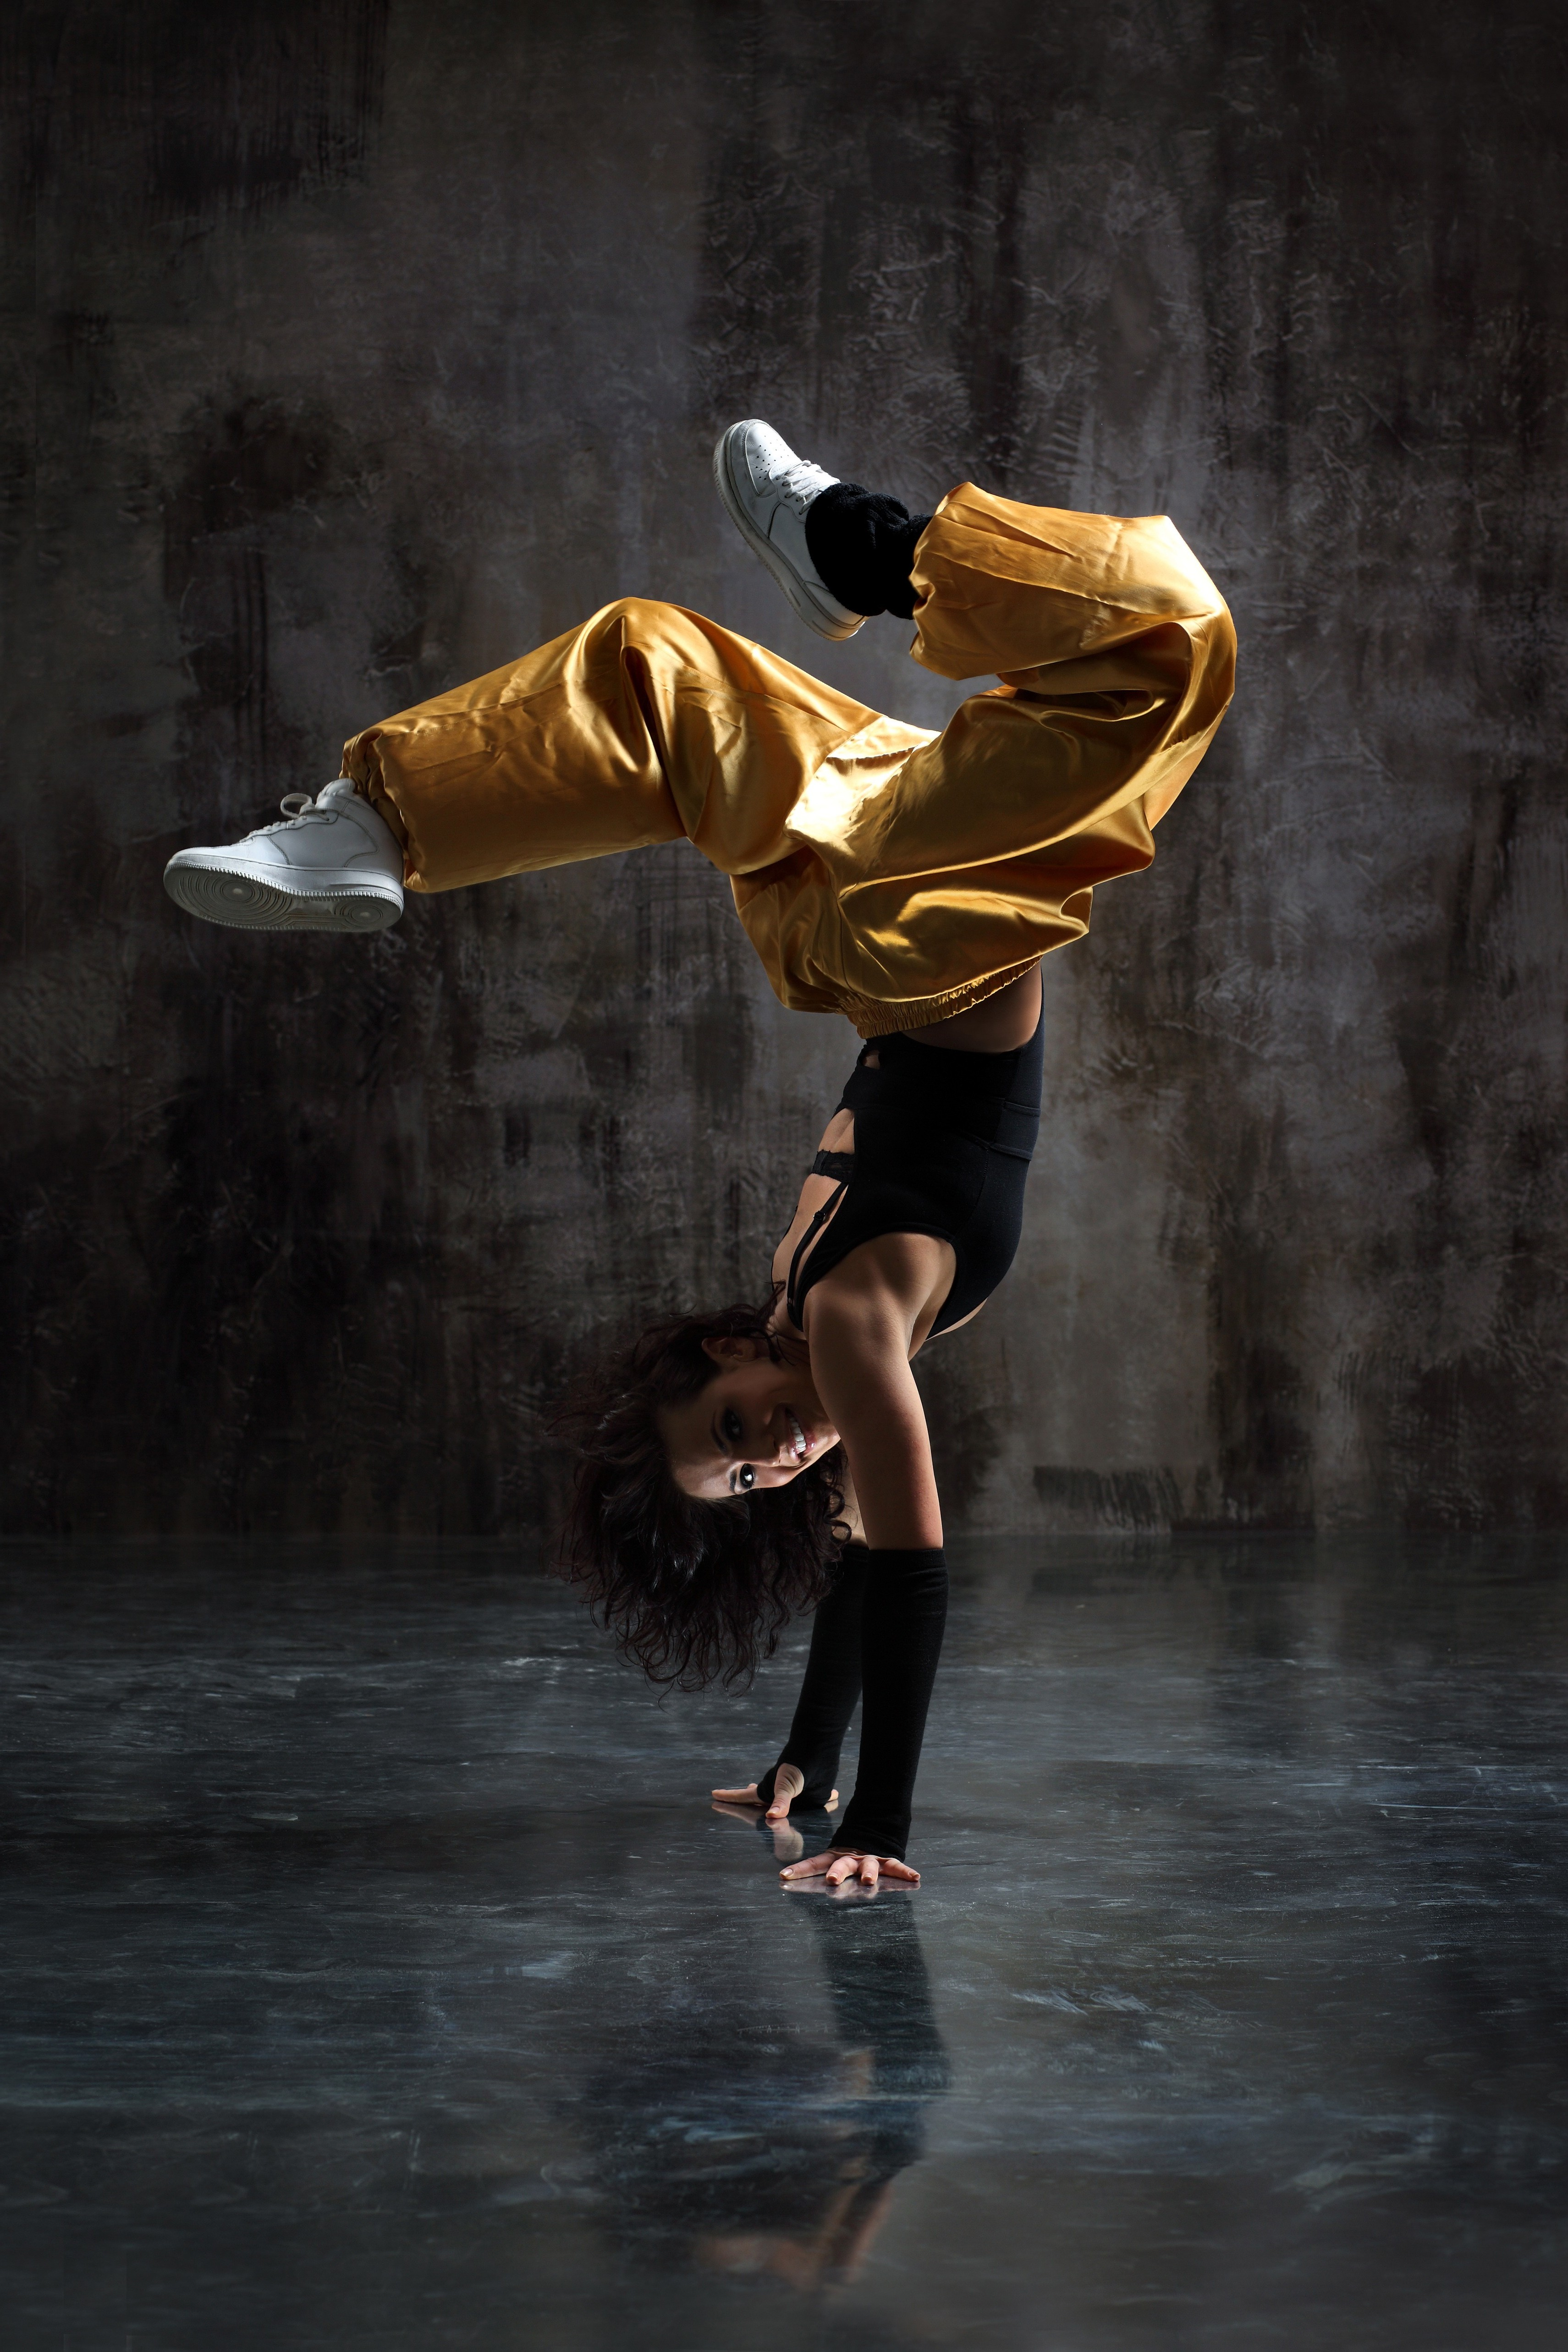 Hip Hop Dancer Wallpaper Hd 3421x5132 Download Hd Wallpaper Wallpapertip